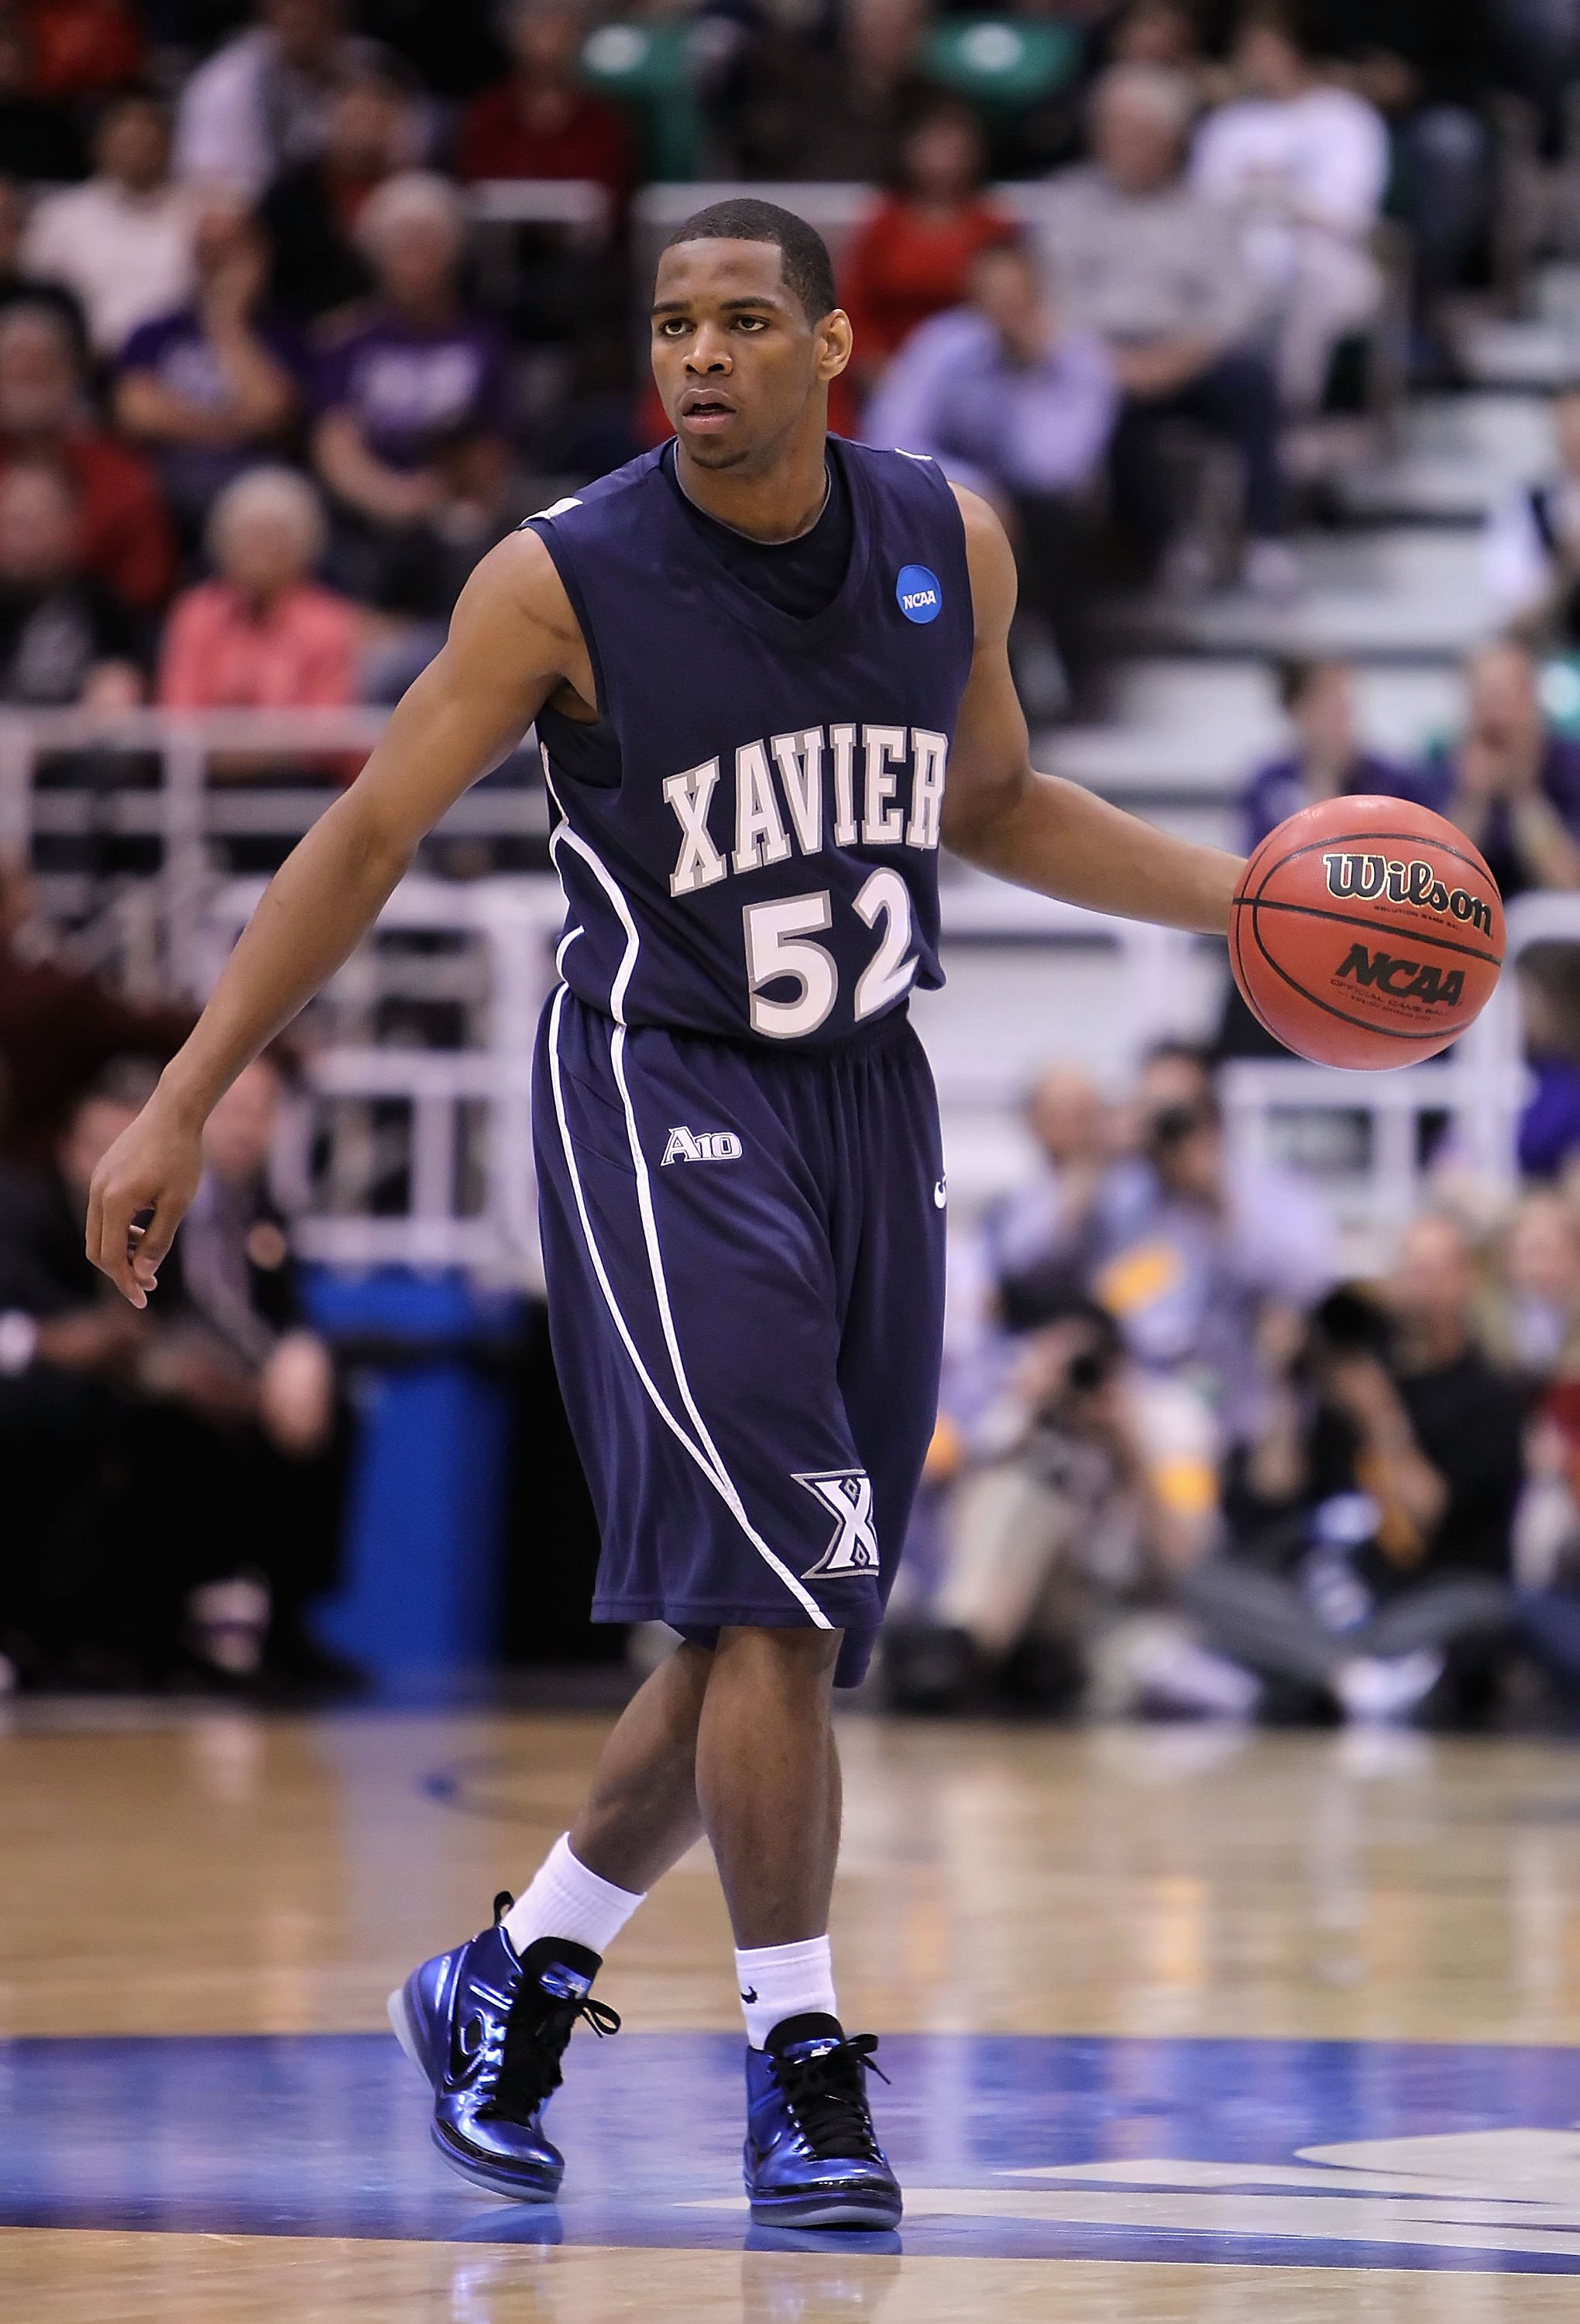 SALT LAKE CITY - MARCH 25:  Terrell Holloway #52 of the Xavier Musketeers handles the ball against the Kansas State Wildcats during the west regional semifinal of the 2010 NCAA men's basketball tournament at the Energy Solutions Arena on March 25, 2010 in